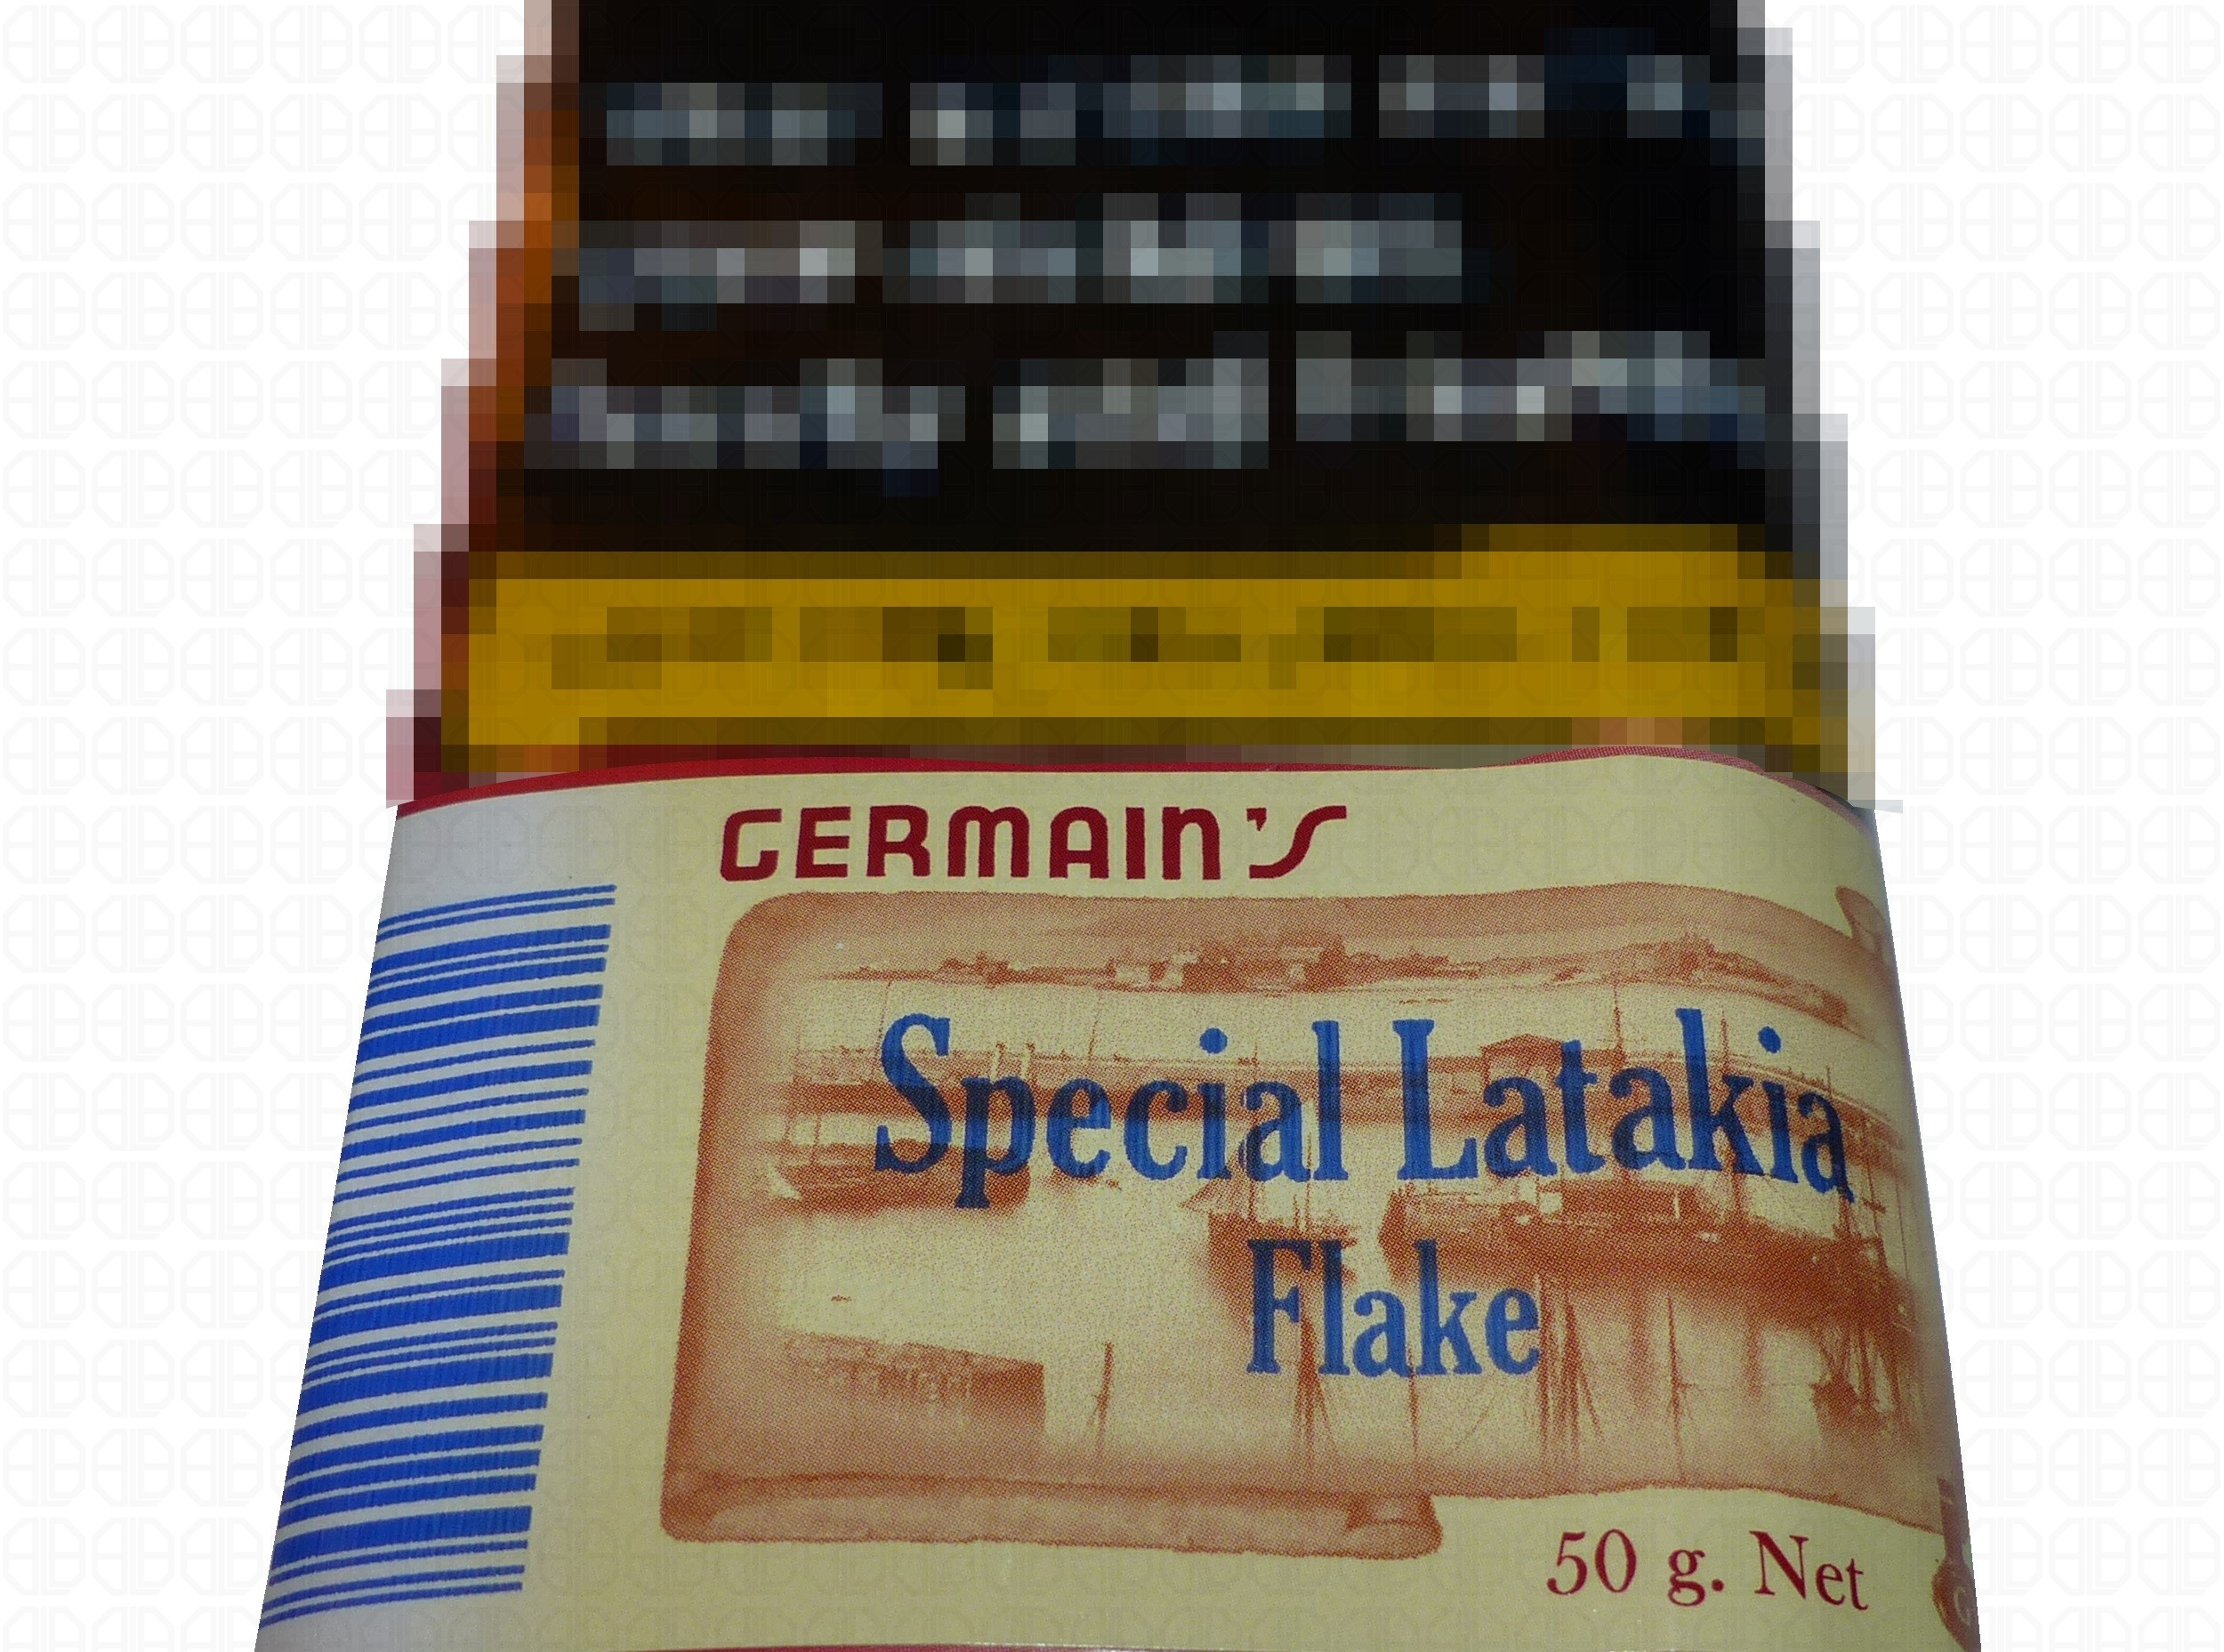 Germains Special Latakia Flake (50g)